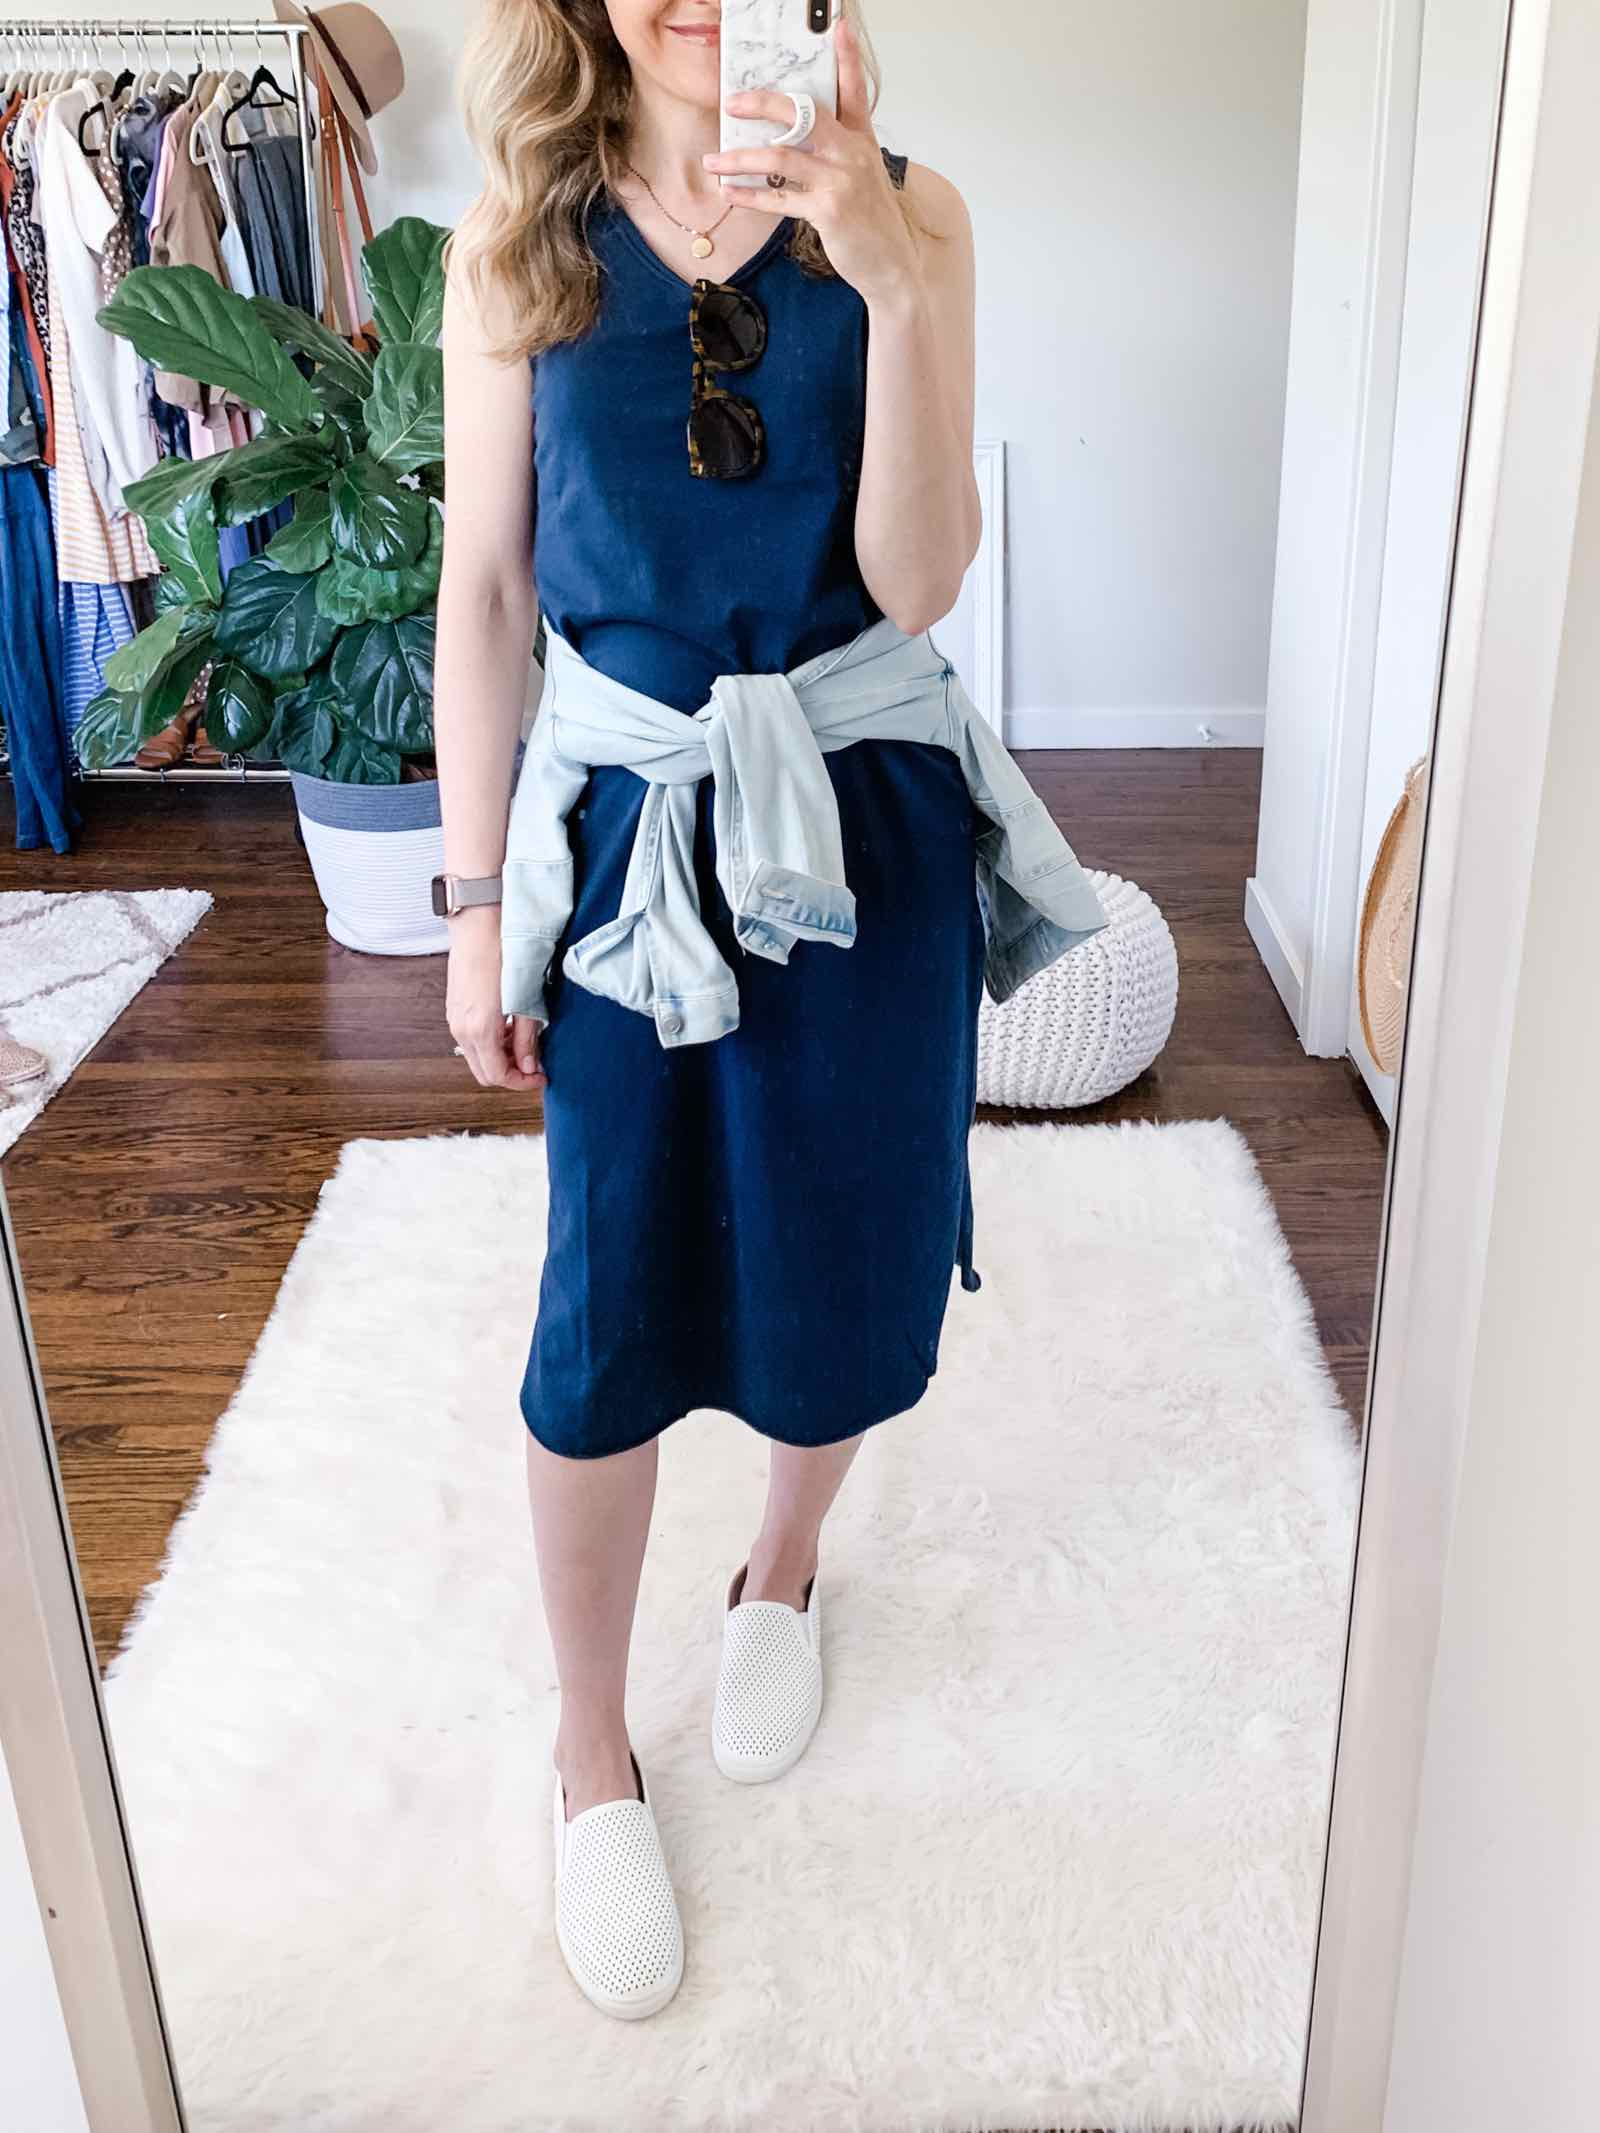 Walmart $13 midi dress, perfect summer staple!